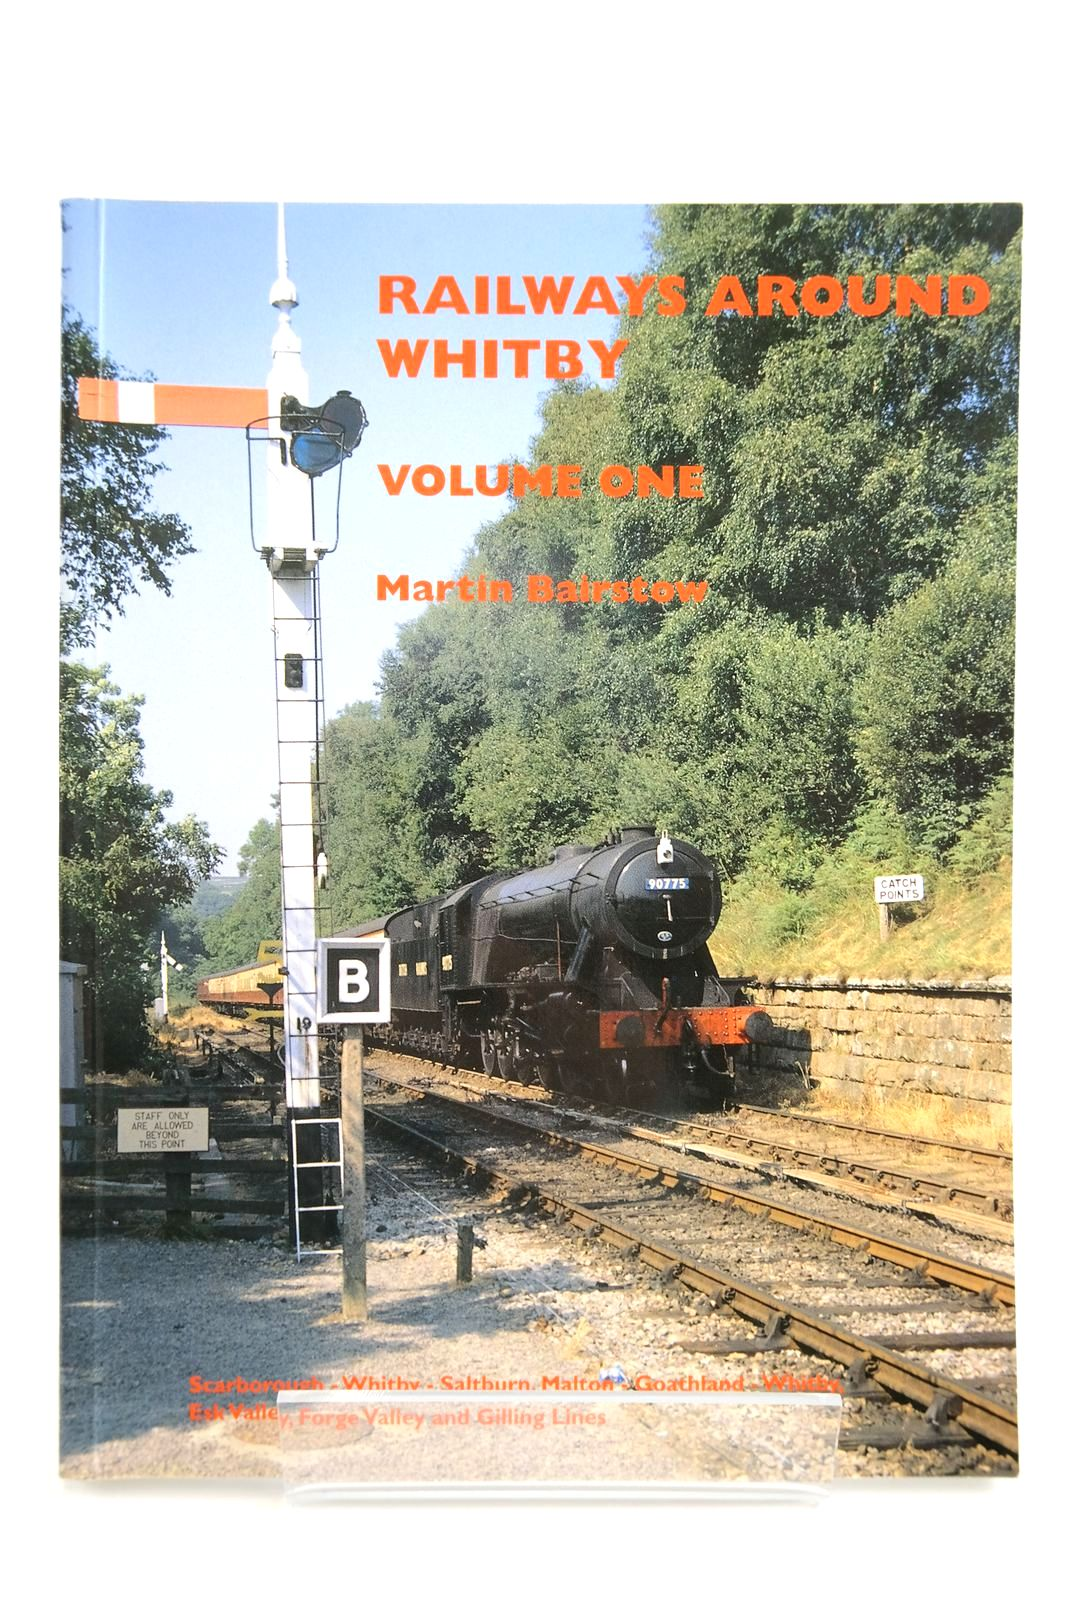 Photo of RAILWAYS AROUND WHITBY VOLUME ONE written by Bairstow, Martin published by Martin Bairstow (STOCK CODE: 2133733)  for sale by Stella & Rose's Books